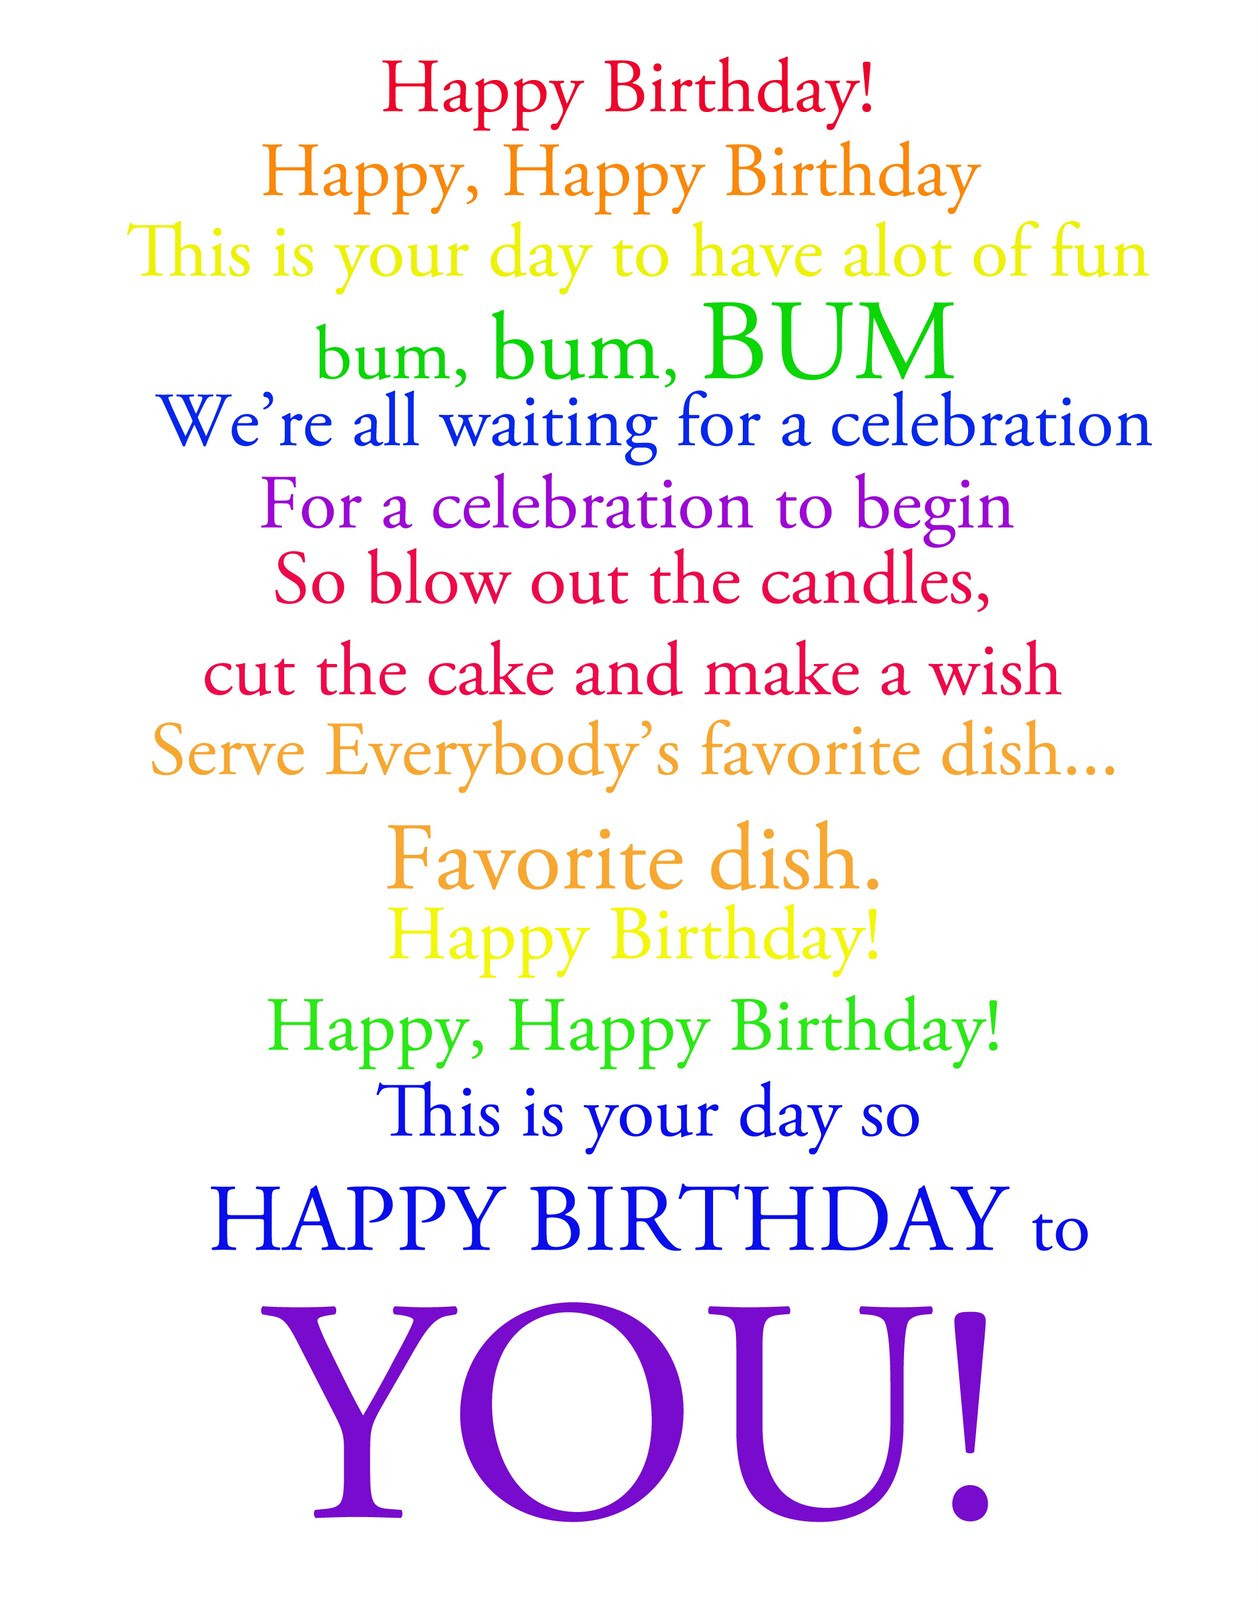 Best ideas about Birthday Wishes Words . Save or Pin The Project Corner Happy Birthday Happy Happy Birthday Now.